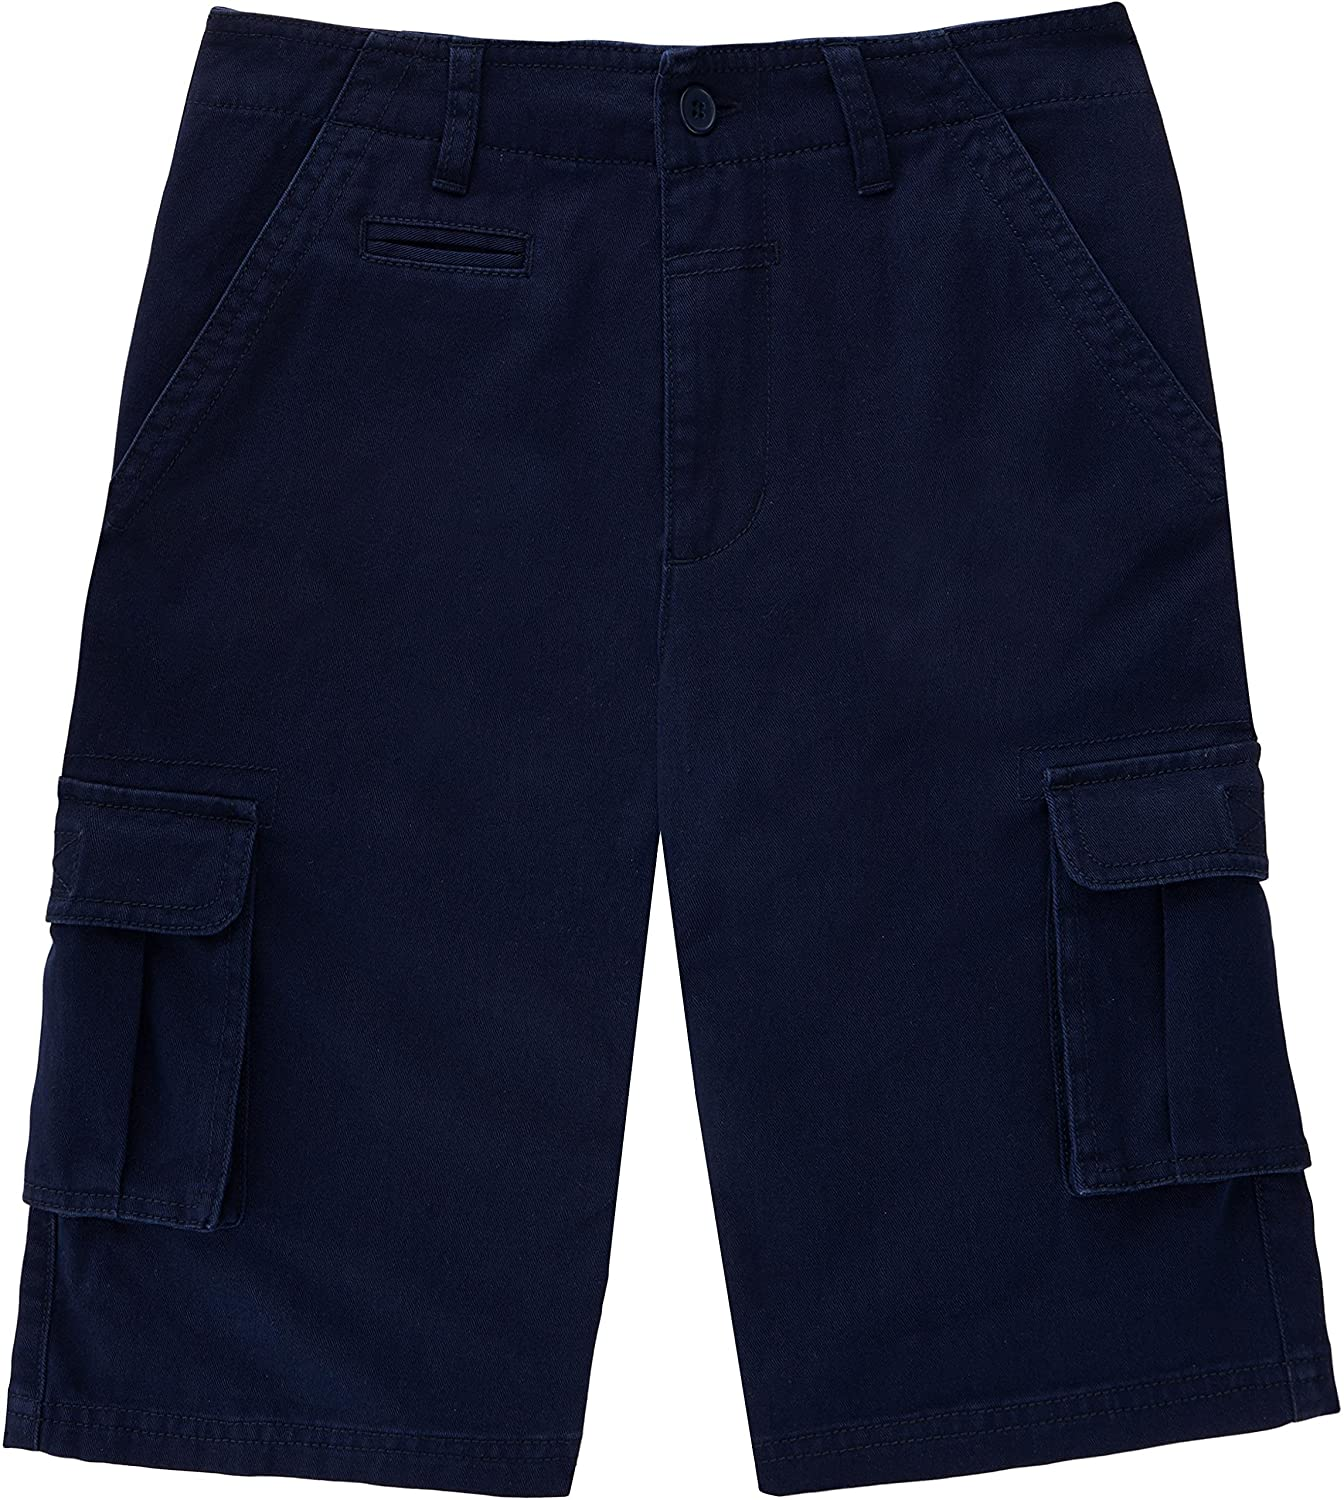 f5be92ff1 French Toast School Uniform Boys Cargo Cotton Twill Shorts, Navy, 3T:  Amazon.ca: Clothing & Accessories